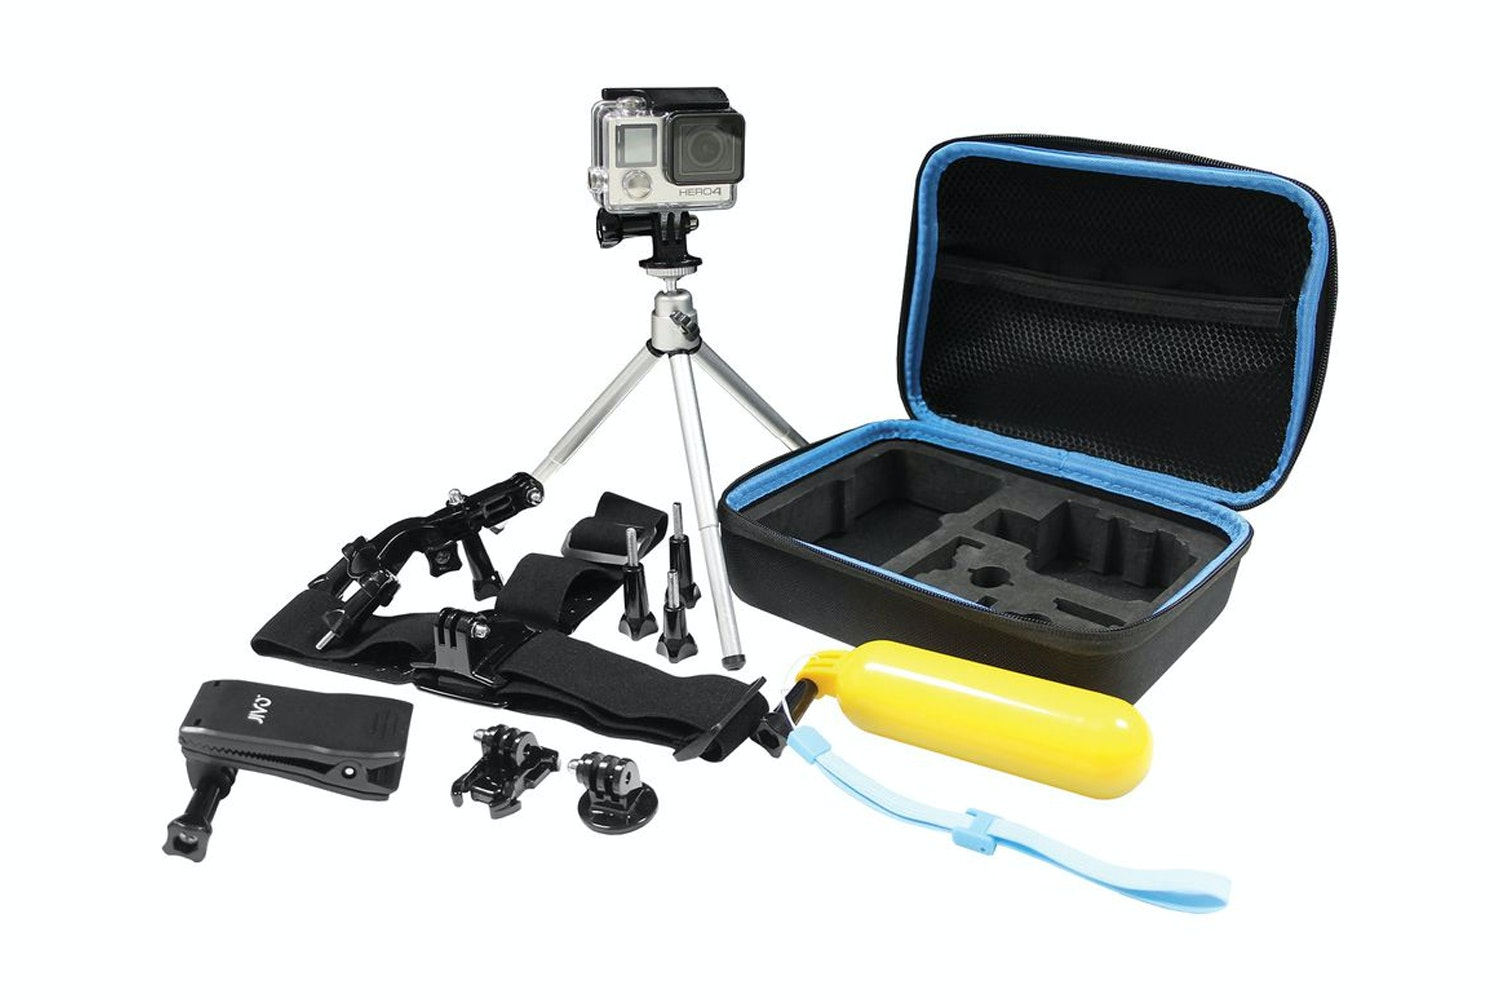 JIVO 6-in-1 MKII Kit for GoPro